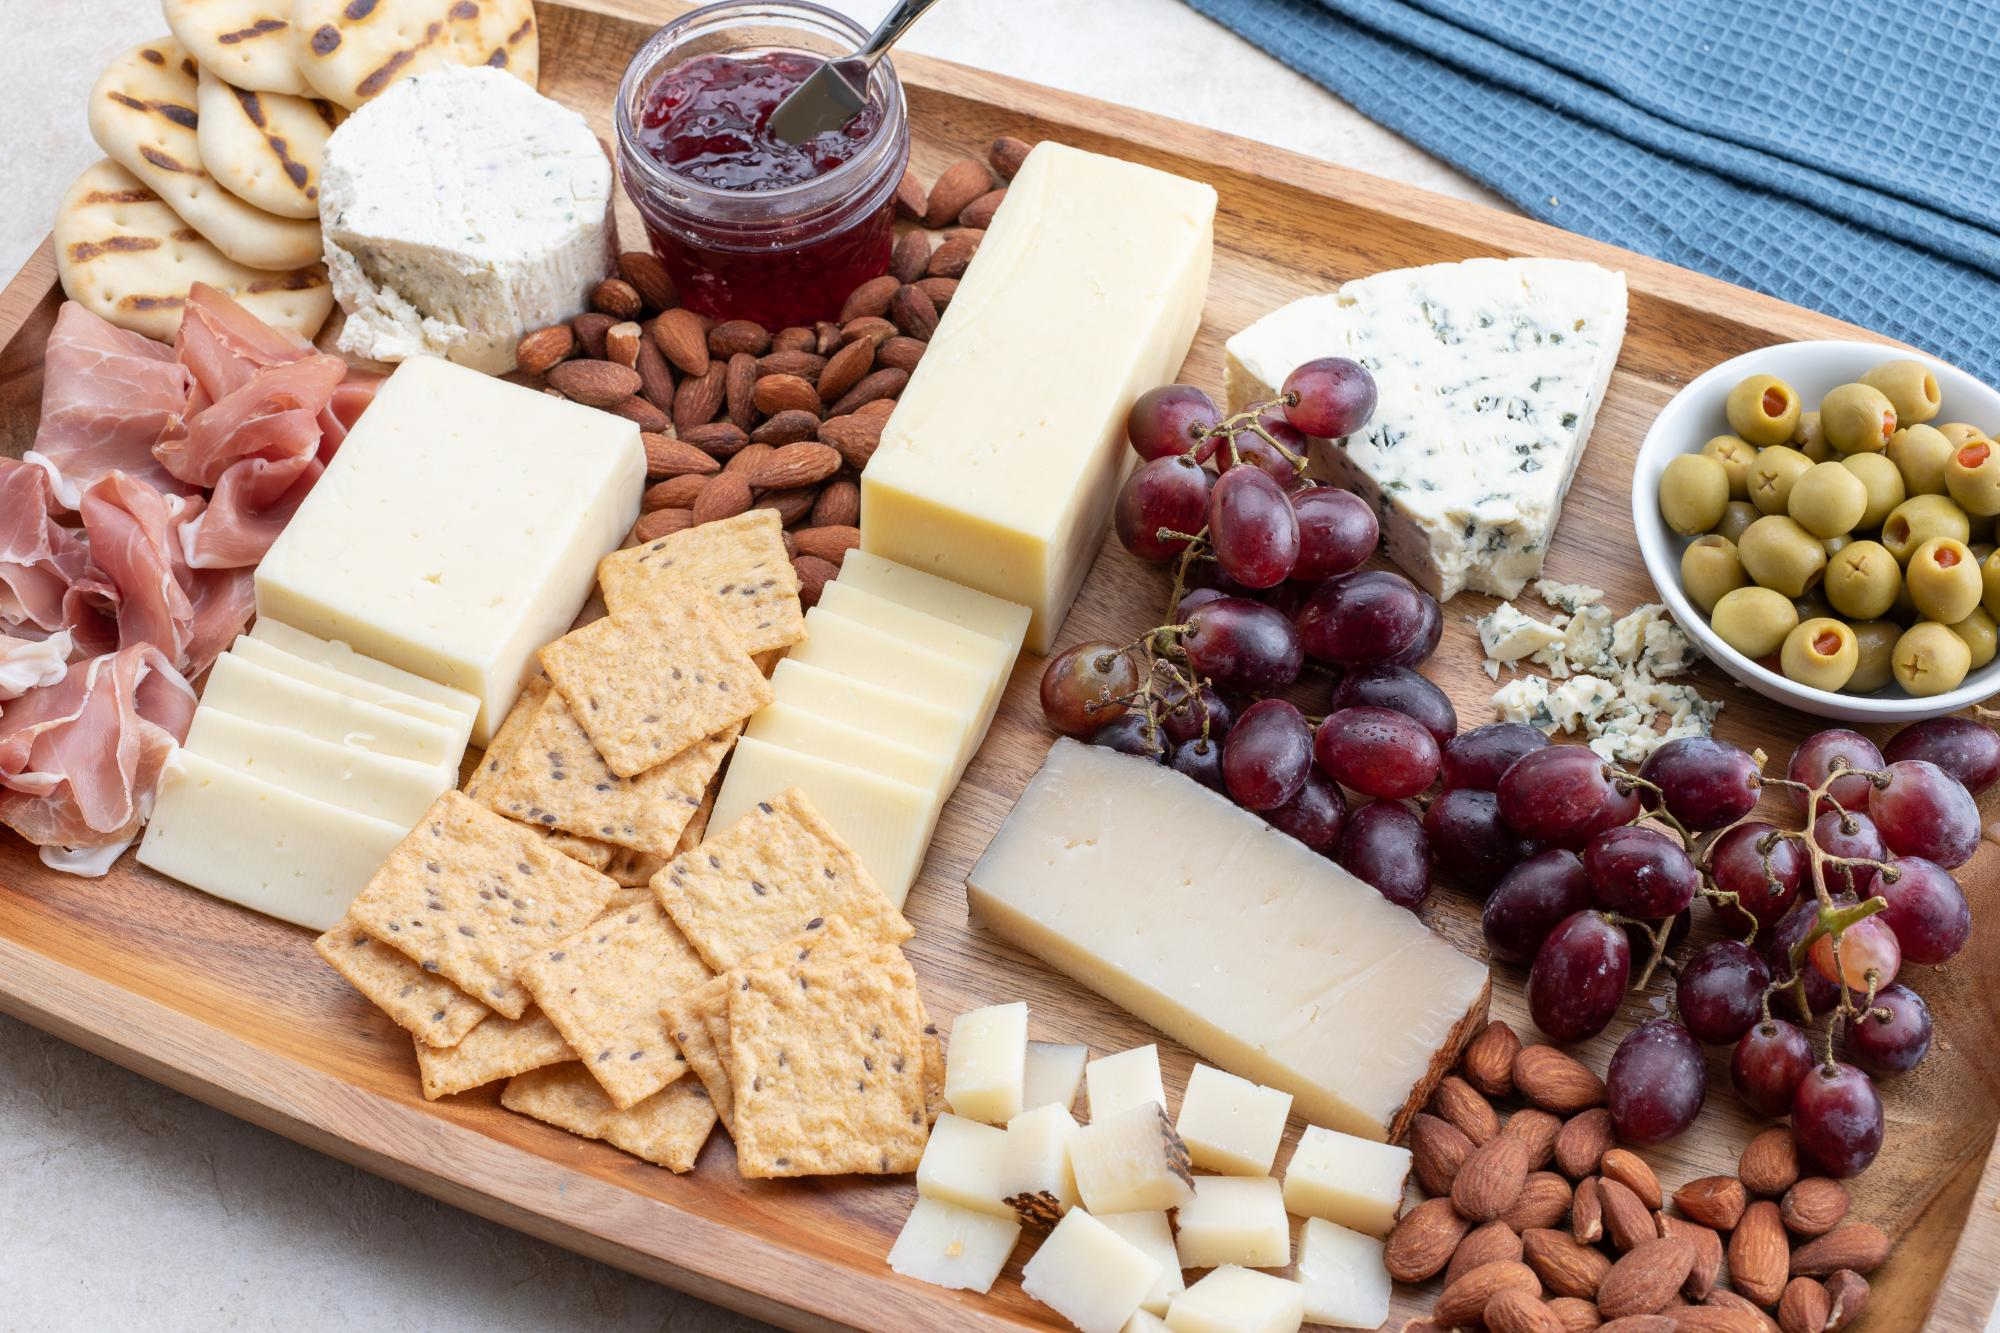 Completed cheese board.